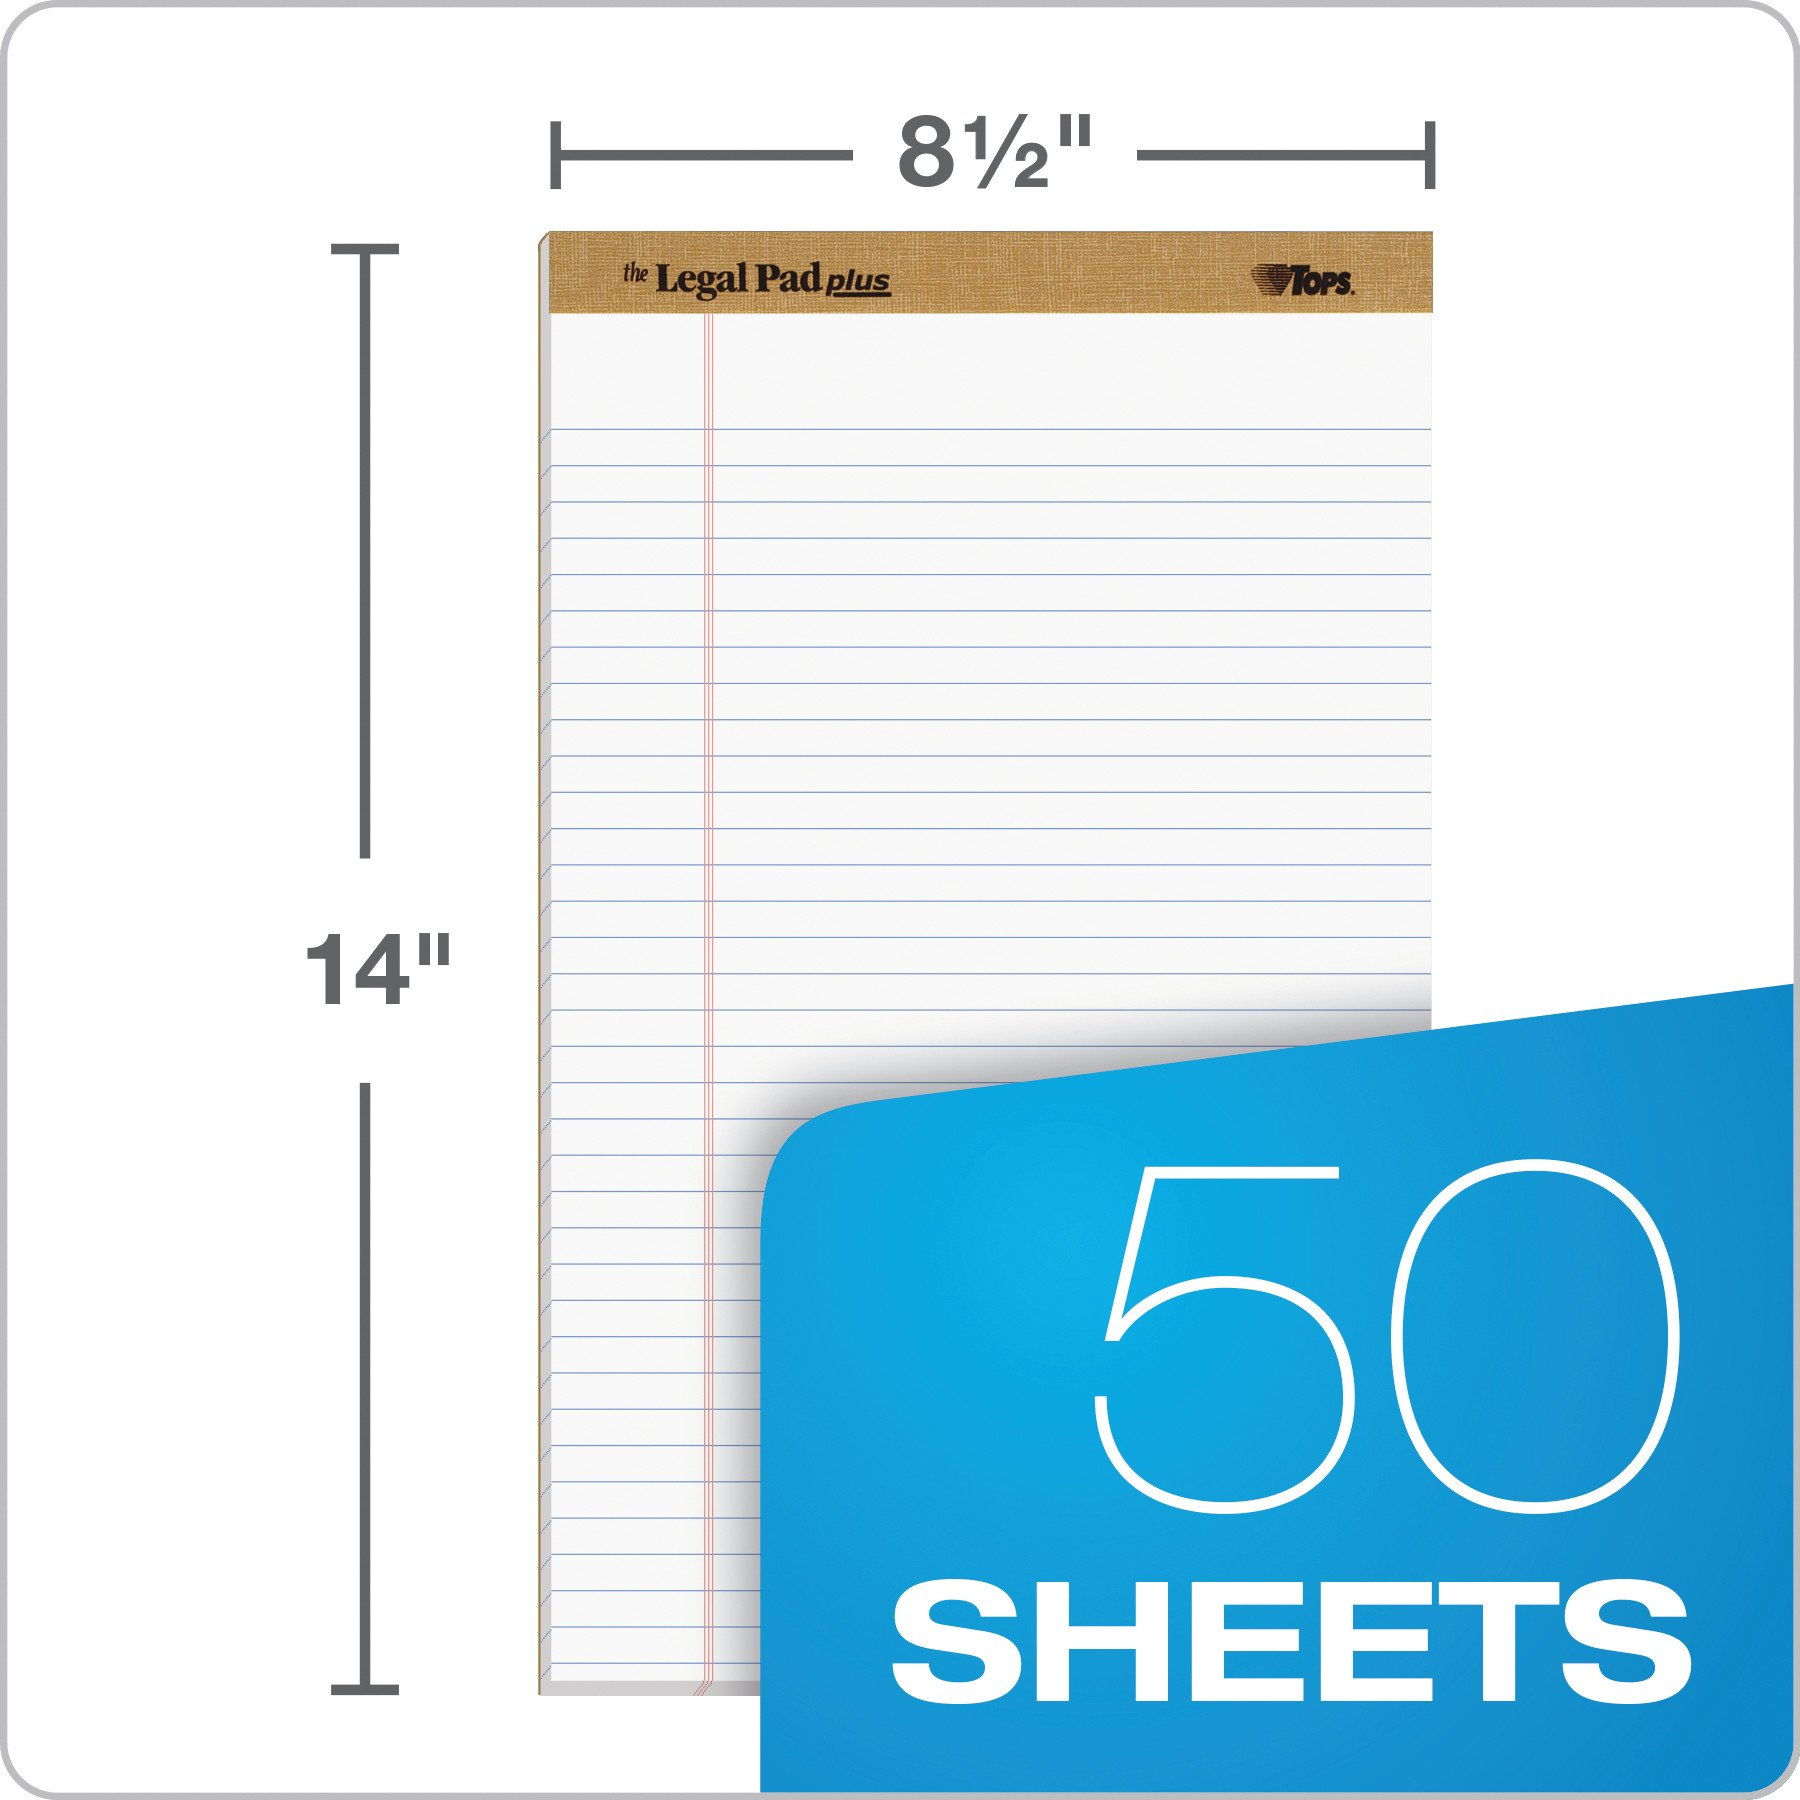 TOPS The Legal Pad Plus Writing Pads, 8-1/2'' x 14'', Legal Rule, 50 Sheets, 12 Pack (71573) by TOPS (Image #2)